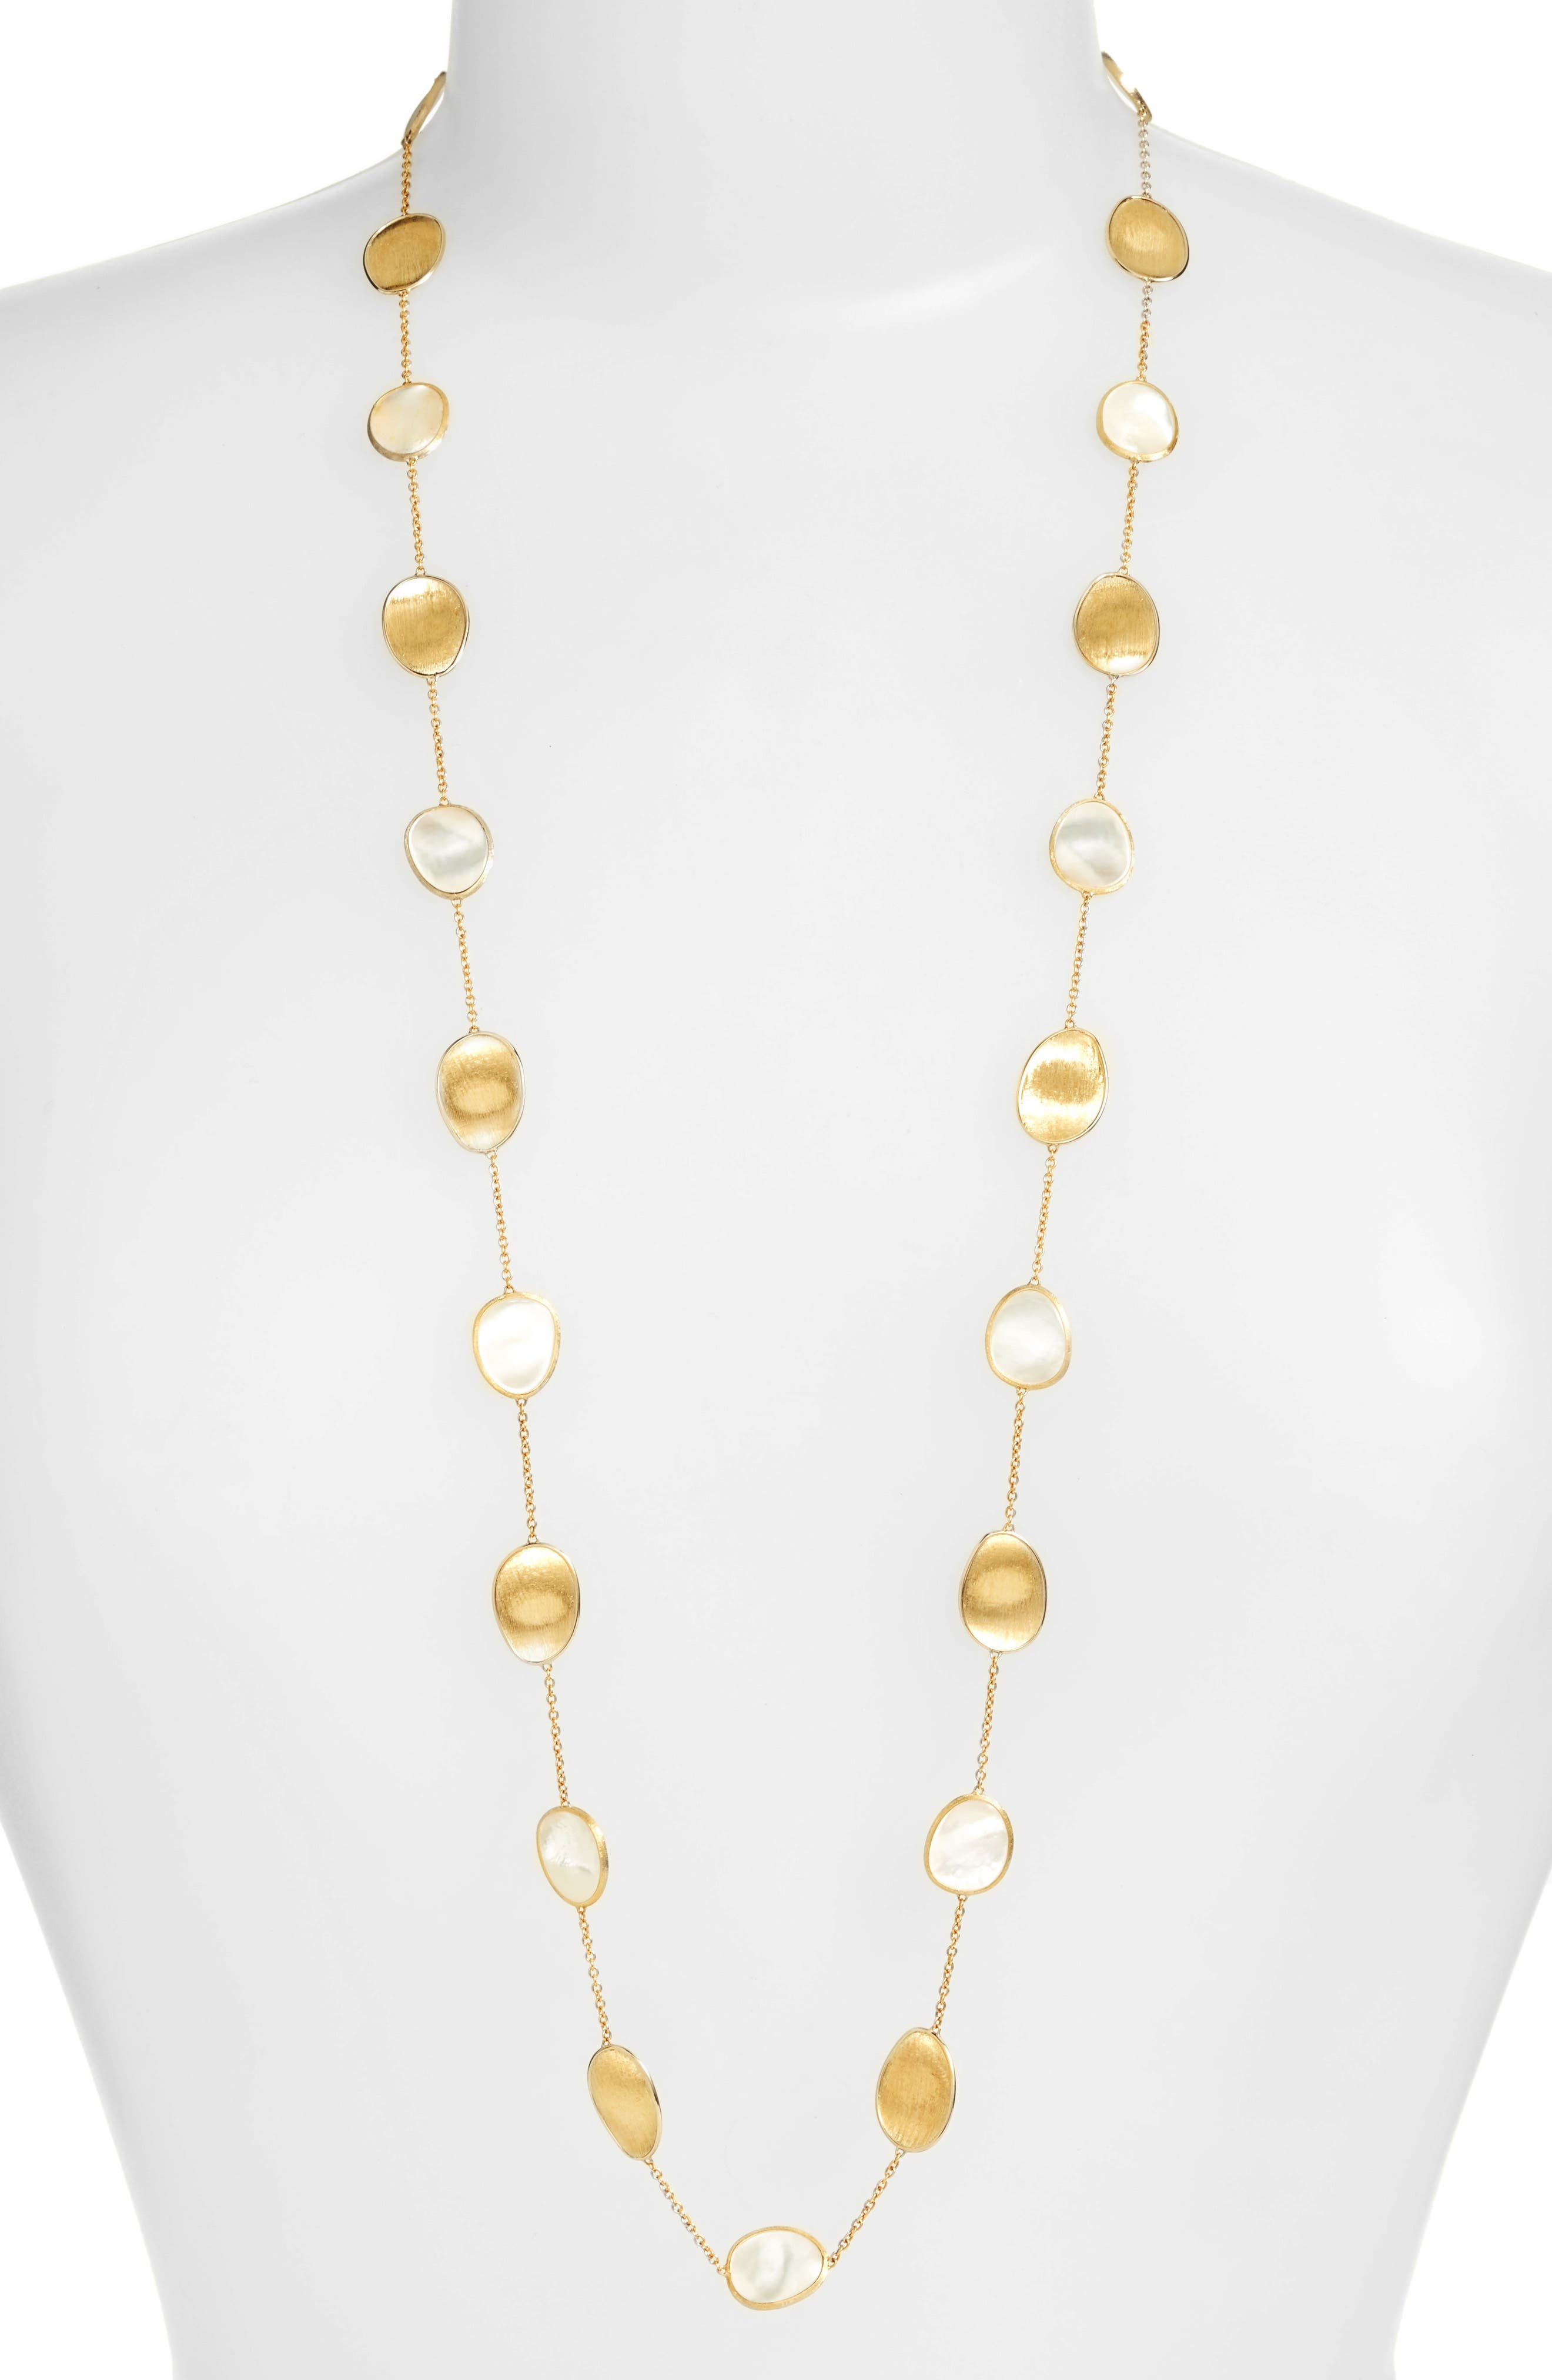 Marco Bicego Lunaria Mother of Pearl Long Strand Necklace